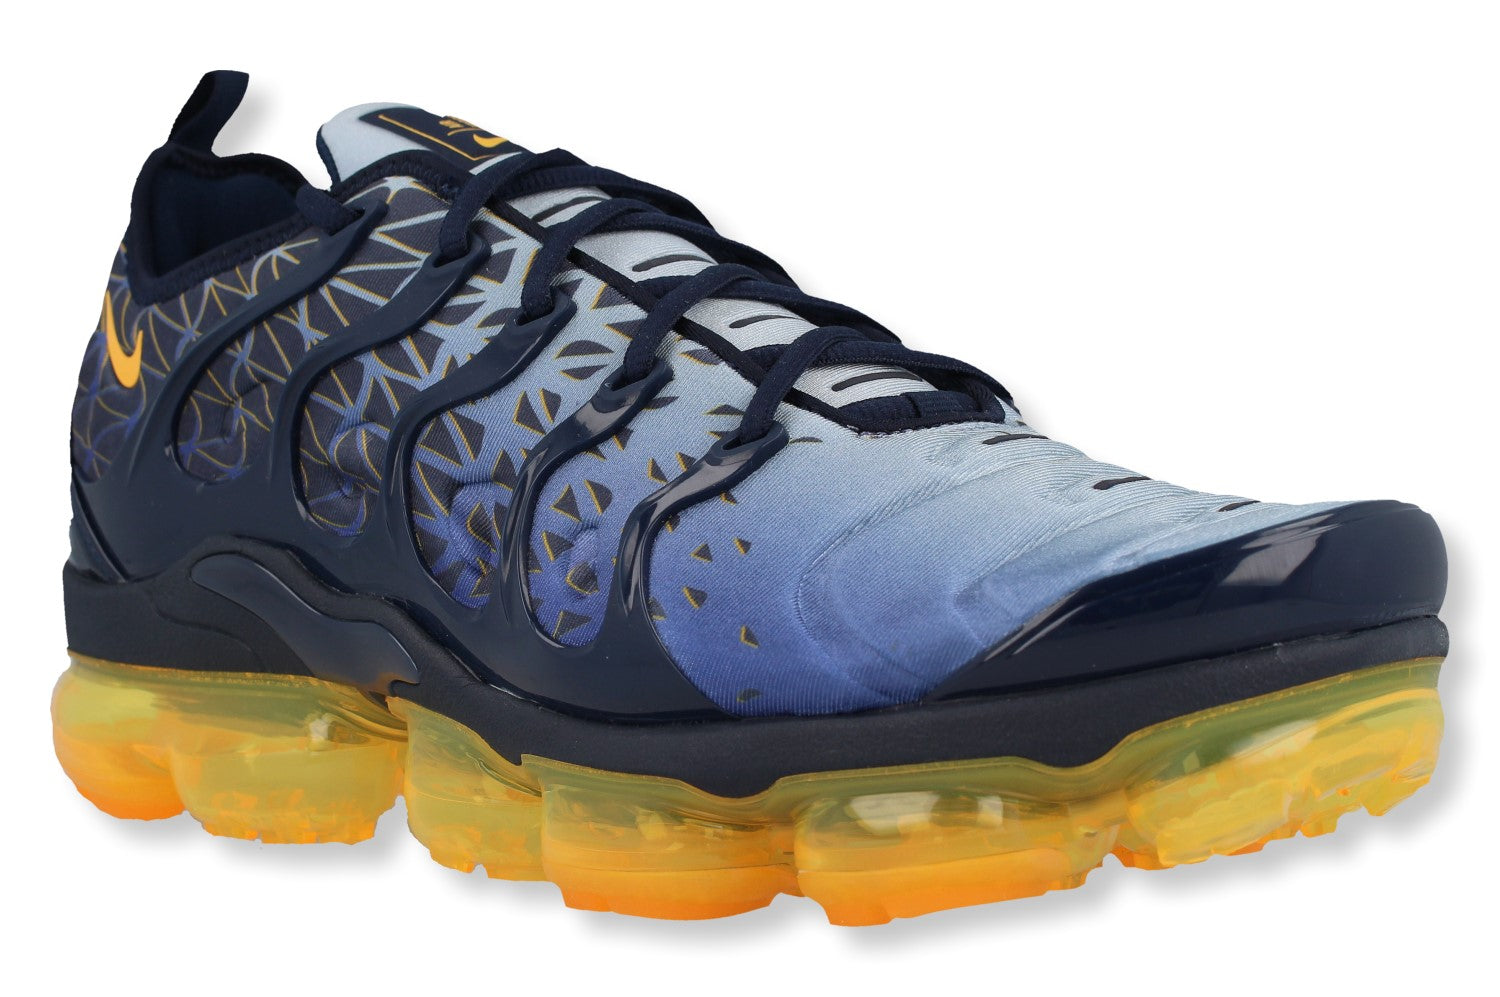 new style 5c936 89a46 Air Vapormax Plus